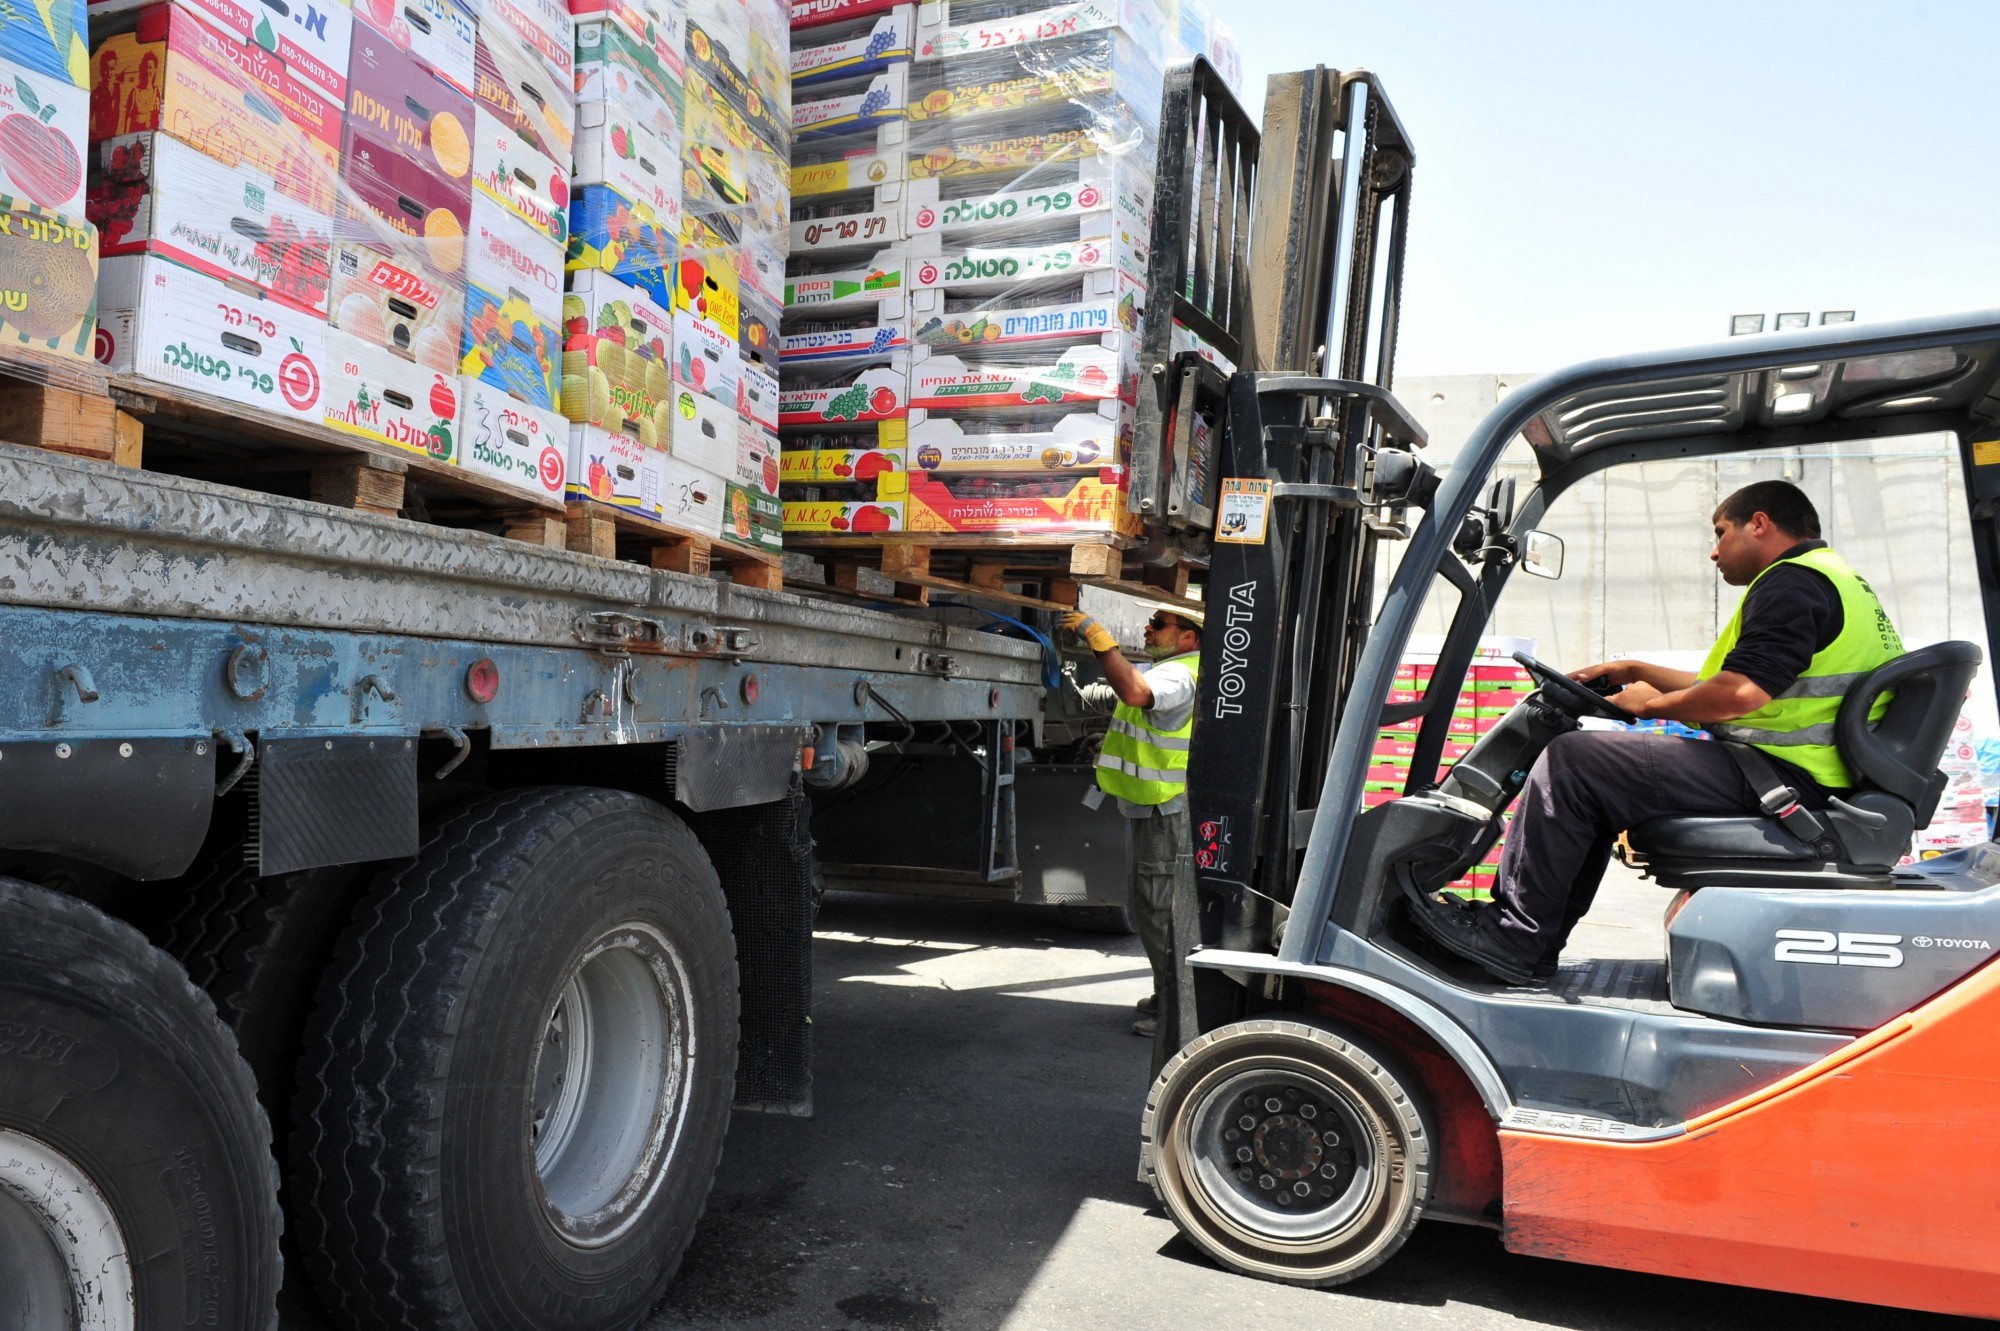 food bank in israel to provide food for the need